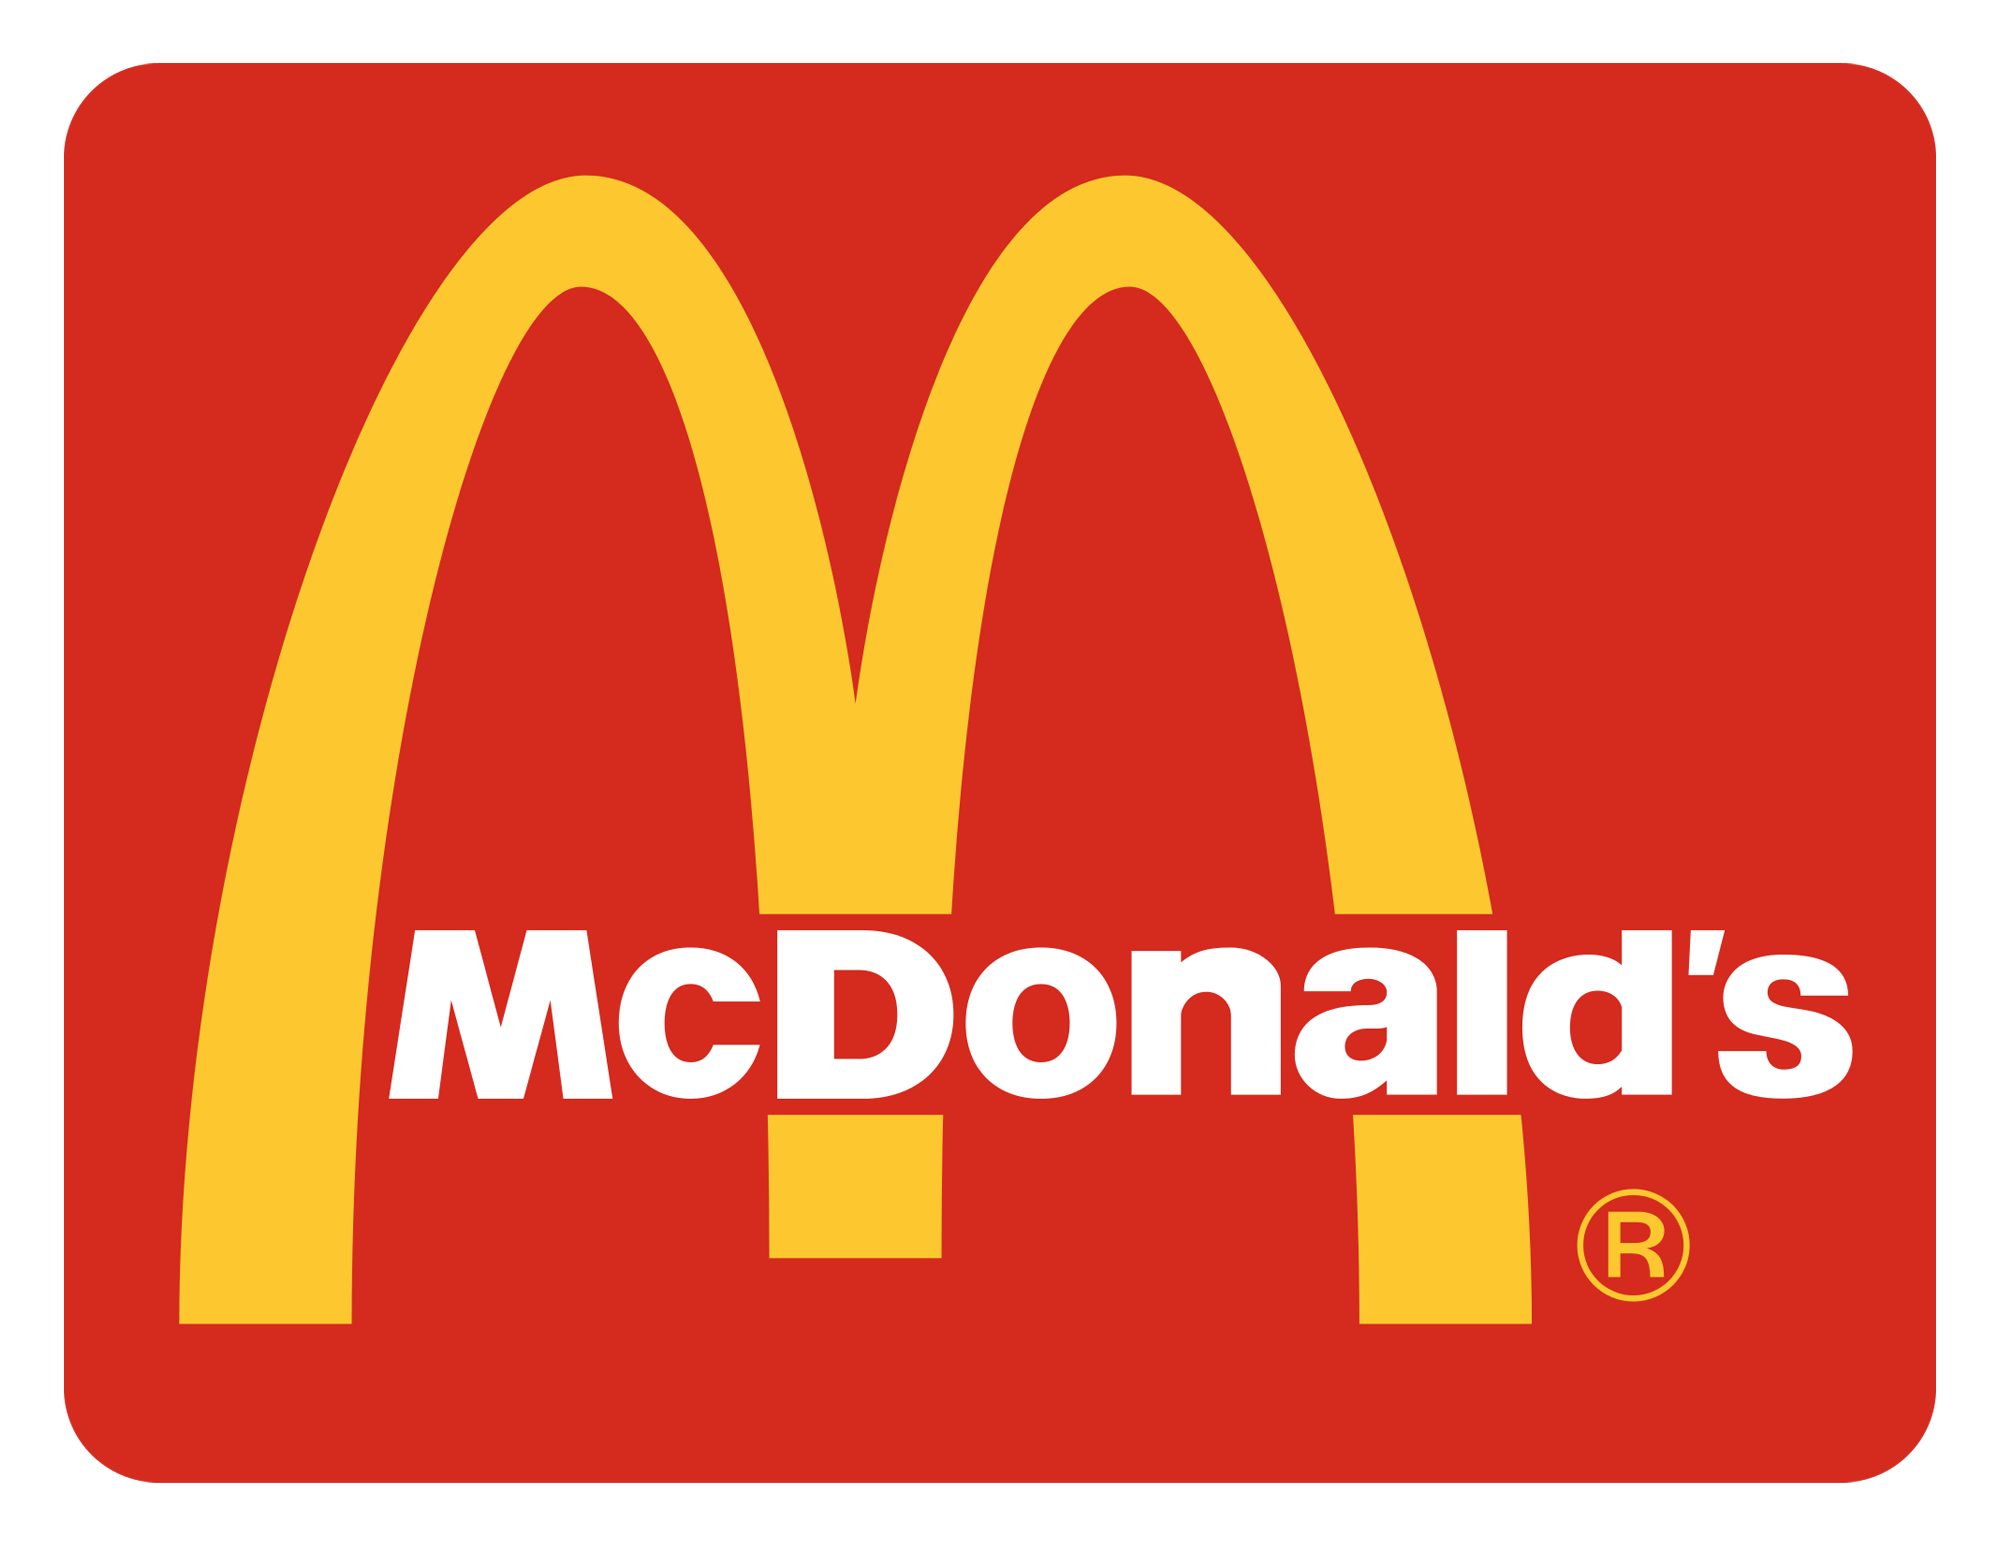 McDonald's (Meaford) logo